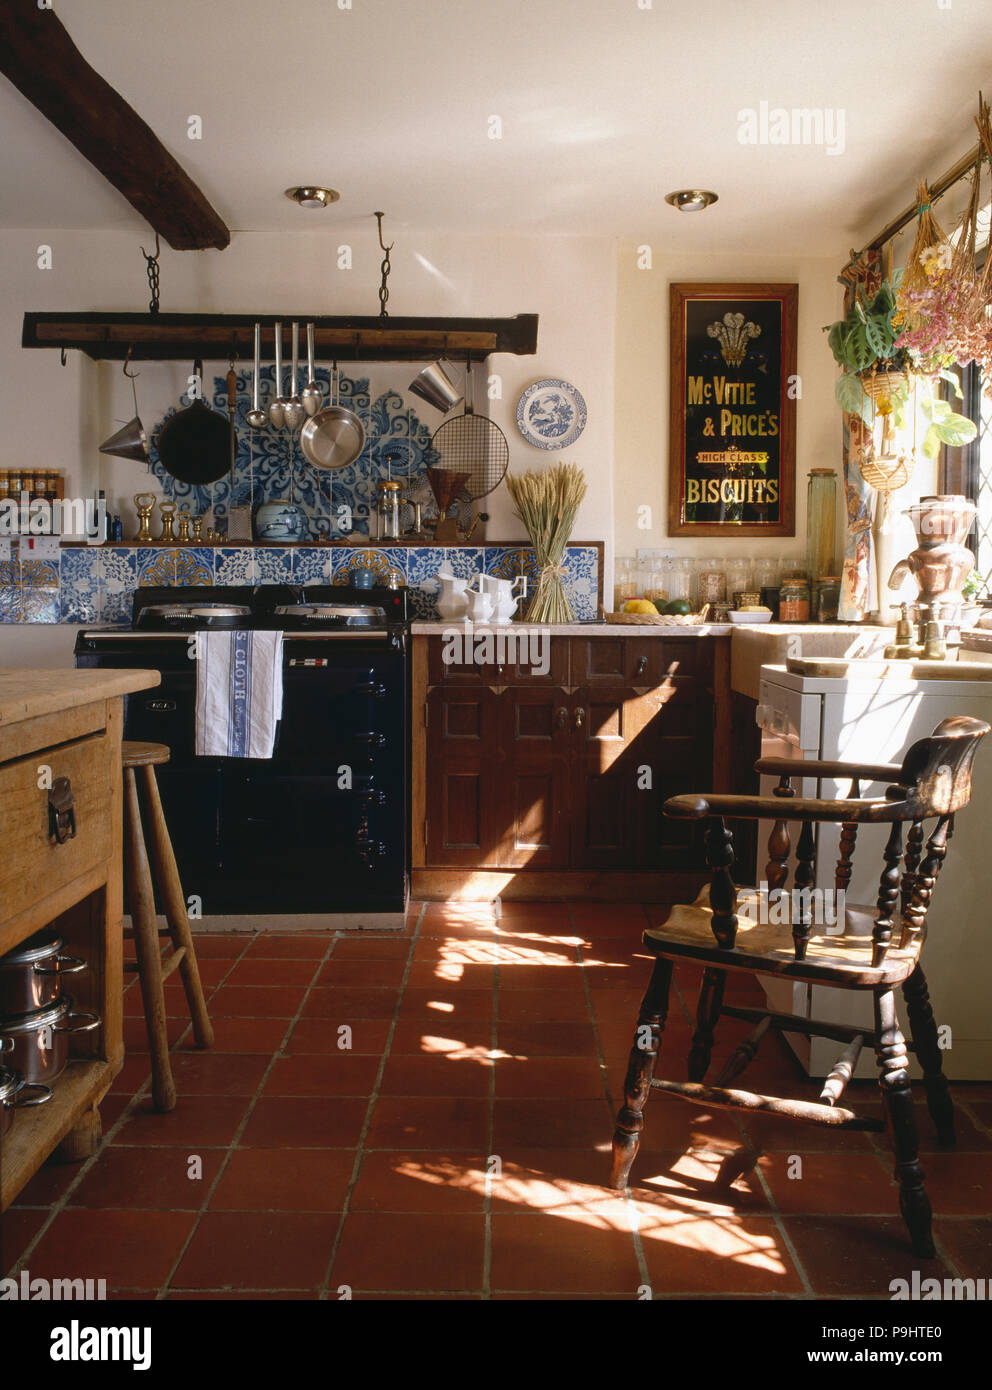 Black Aga Below Blue And White Tiles In Country Kitchen With Terracotta Floor Tiles Vintage Mcvitie Biscuit Sign Stock Photo Alamy